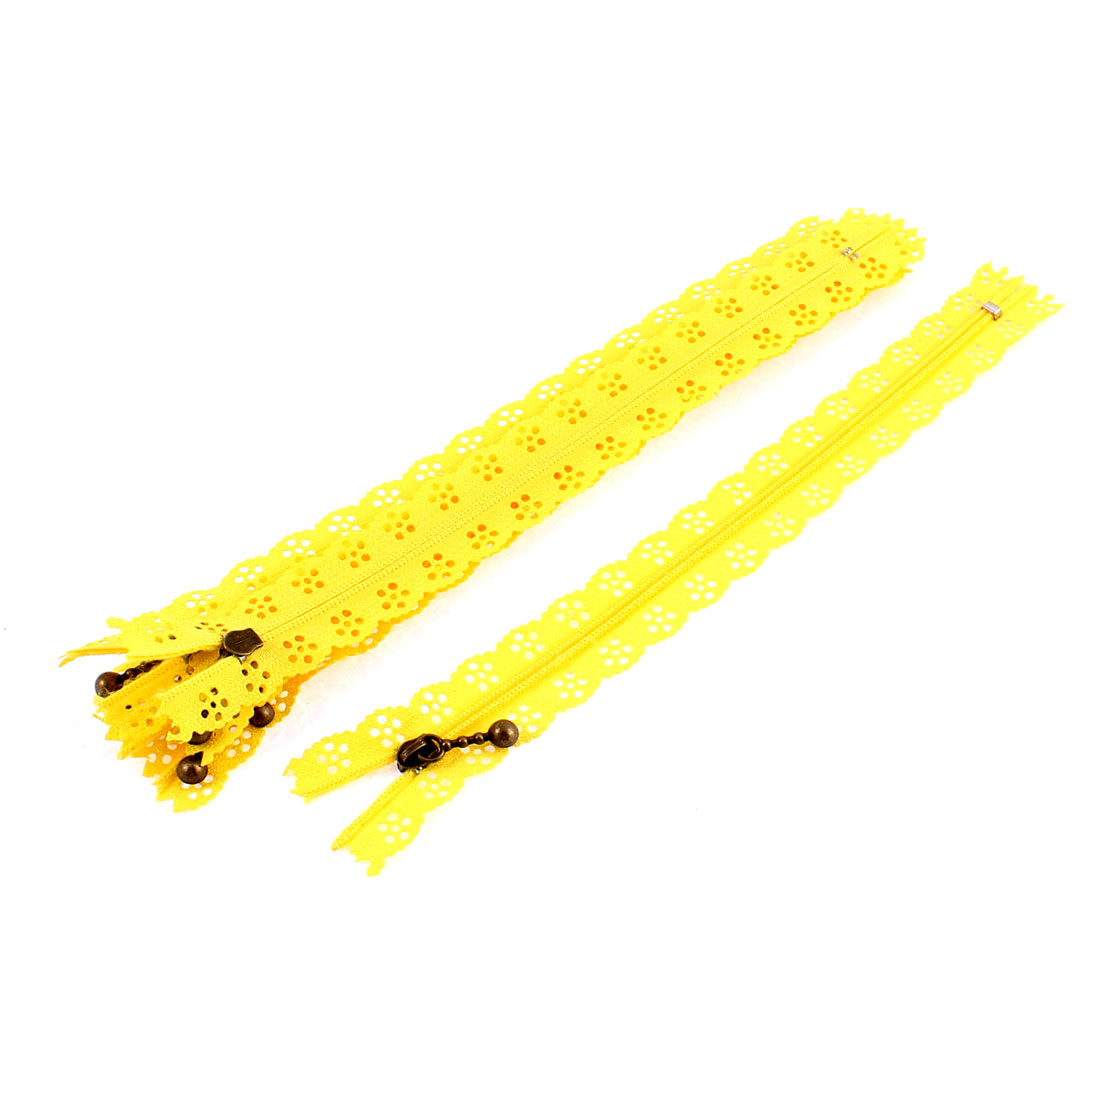 Nylon Coil Zippers Lace Edge Tailor Bag Clothing DIY Craft Yellow 20cm 5 Pcs